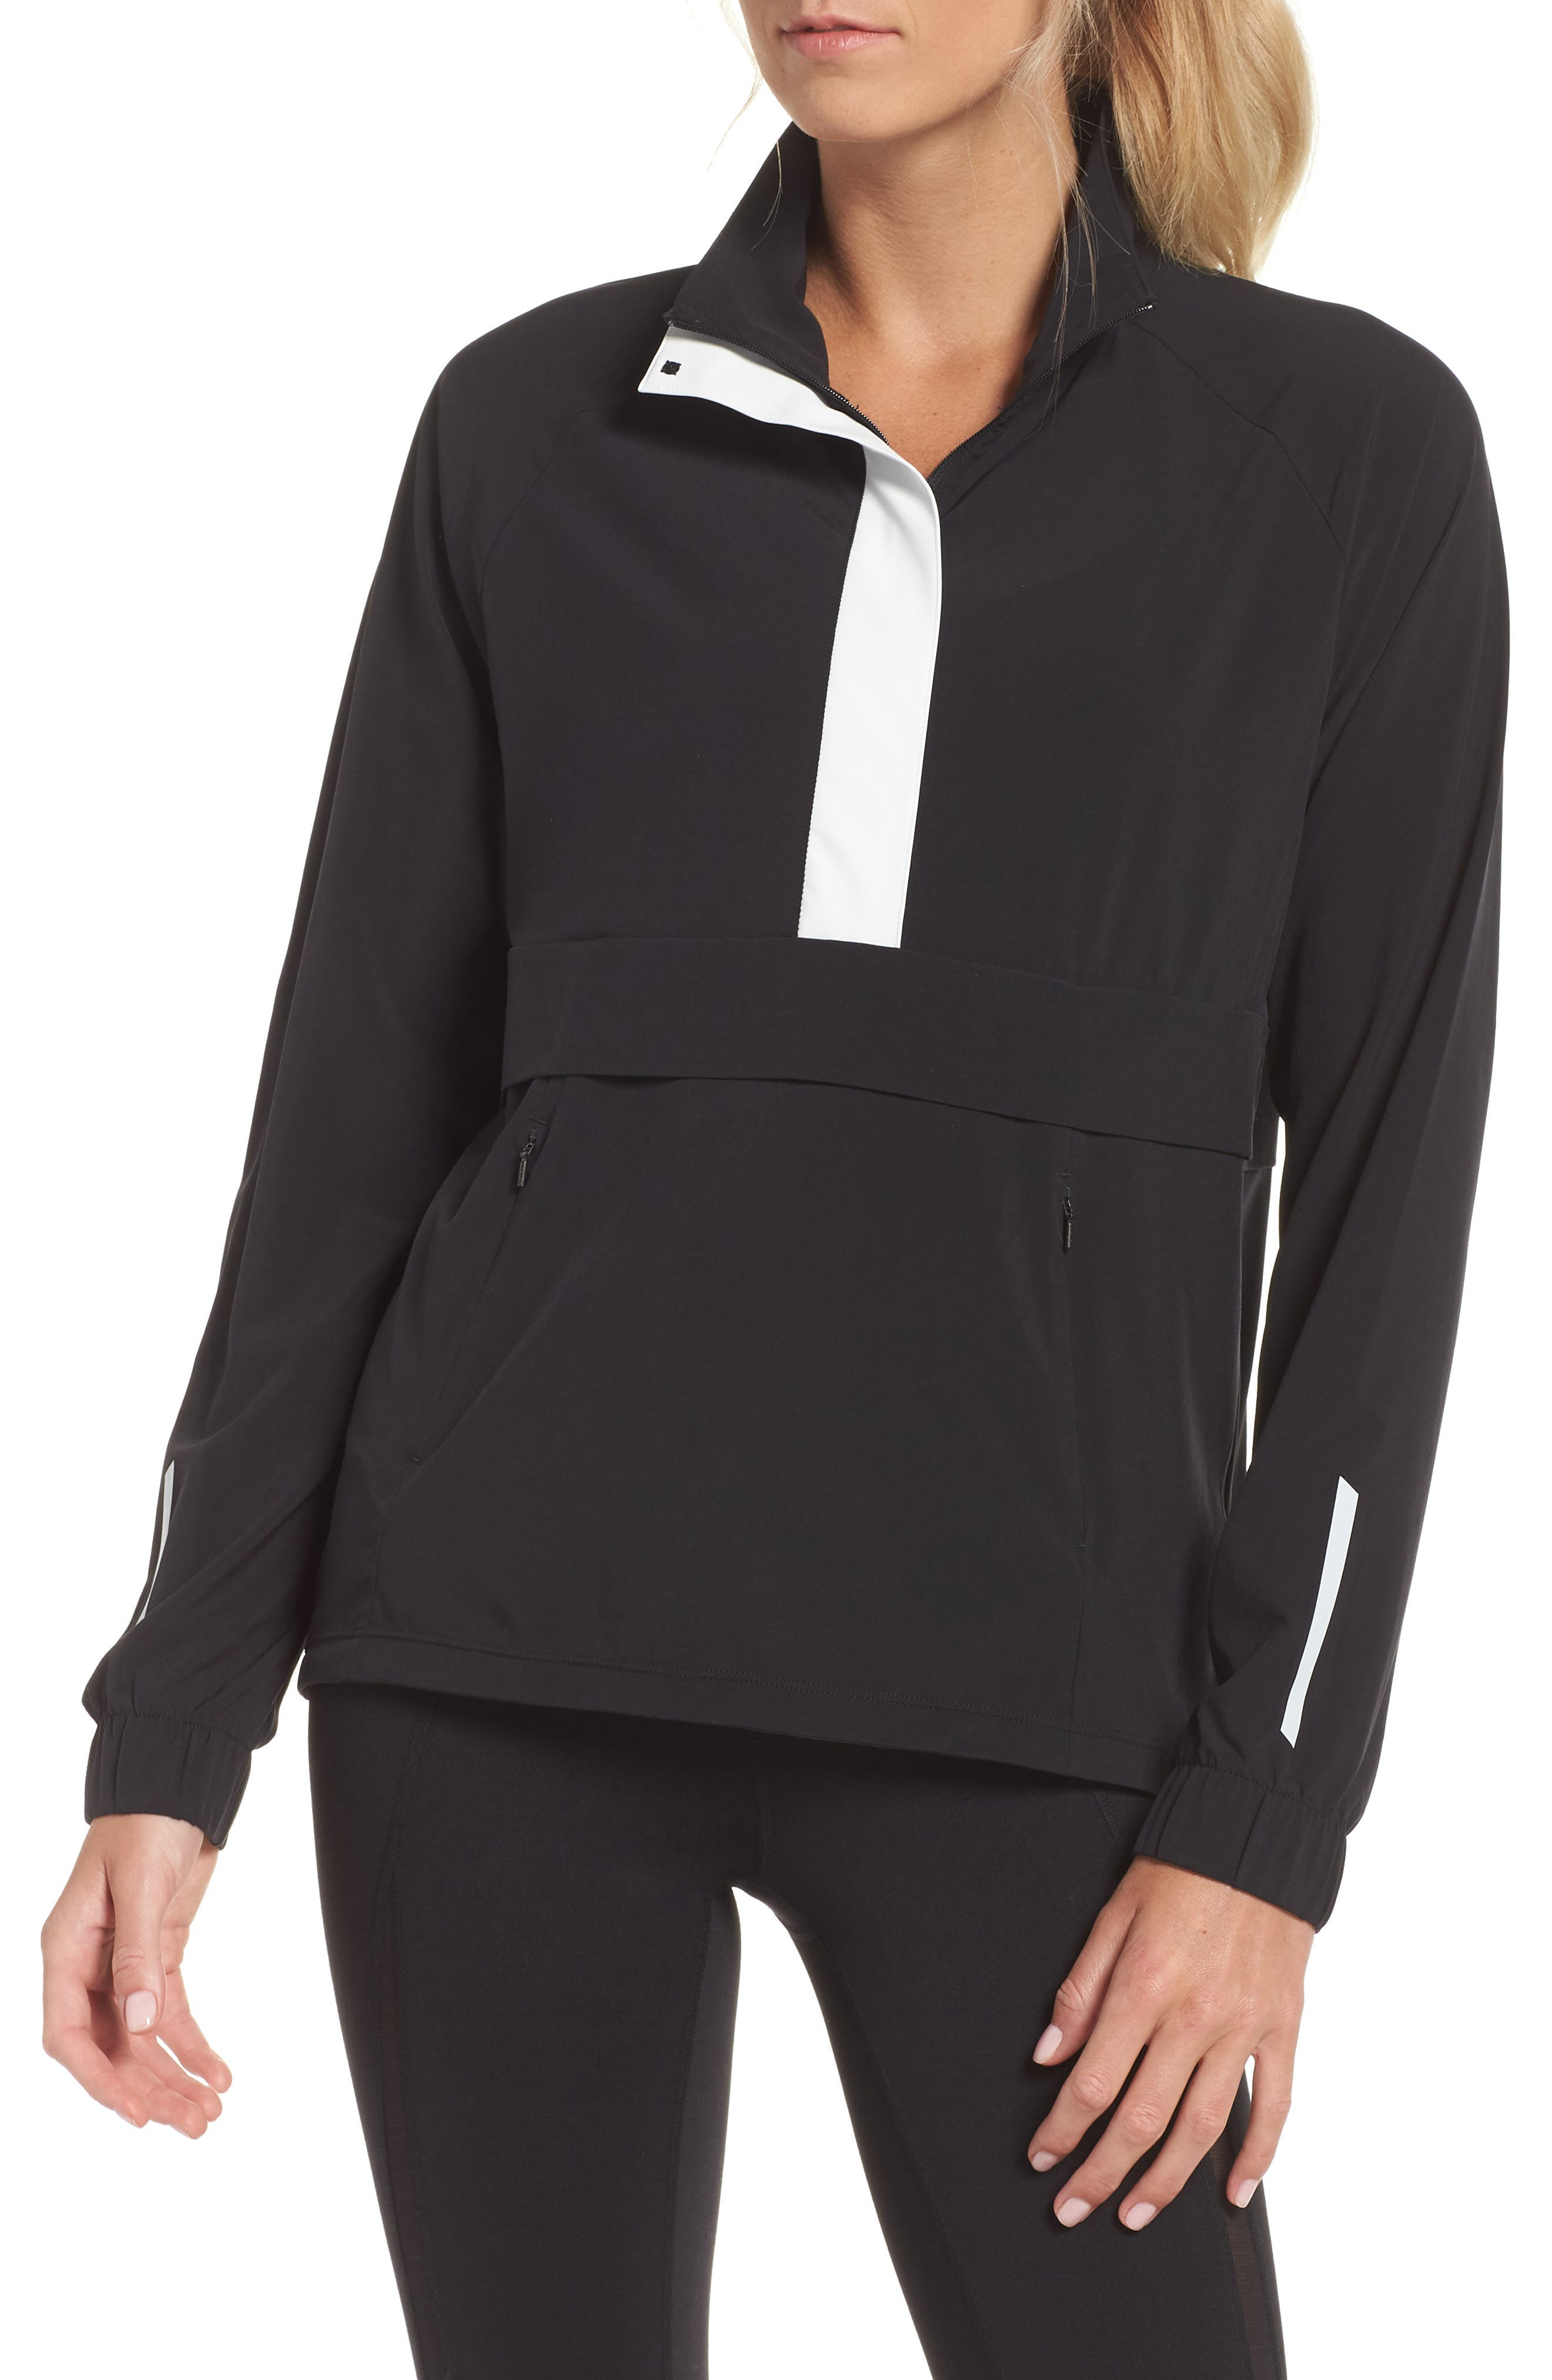 Freestyle Reflective Run Pullover,                         Main,                         color, 001